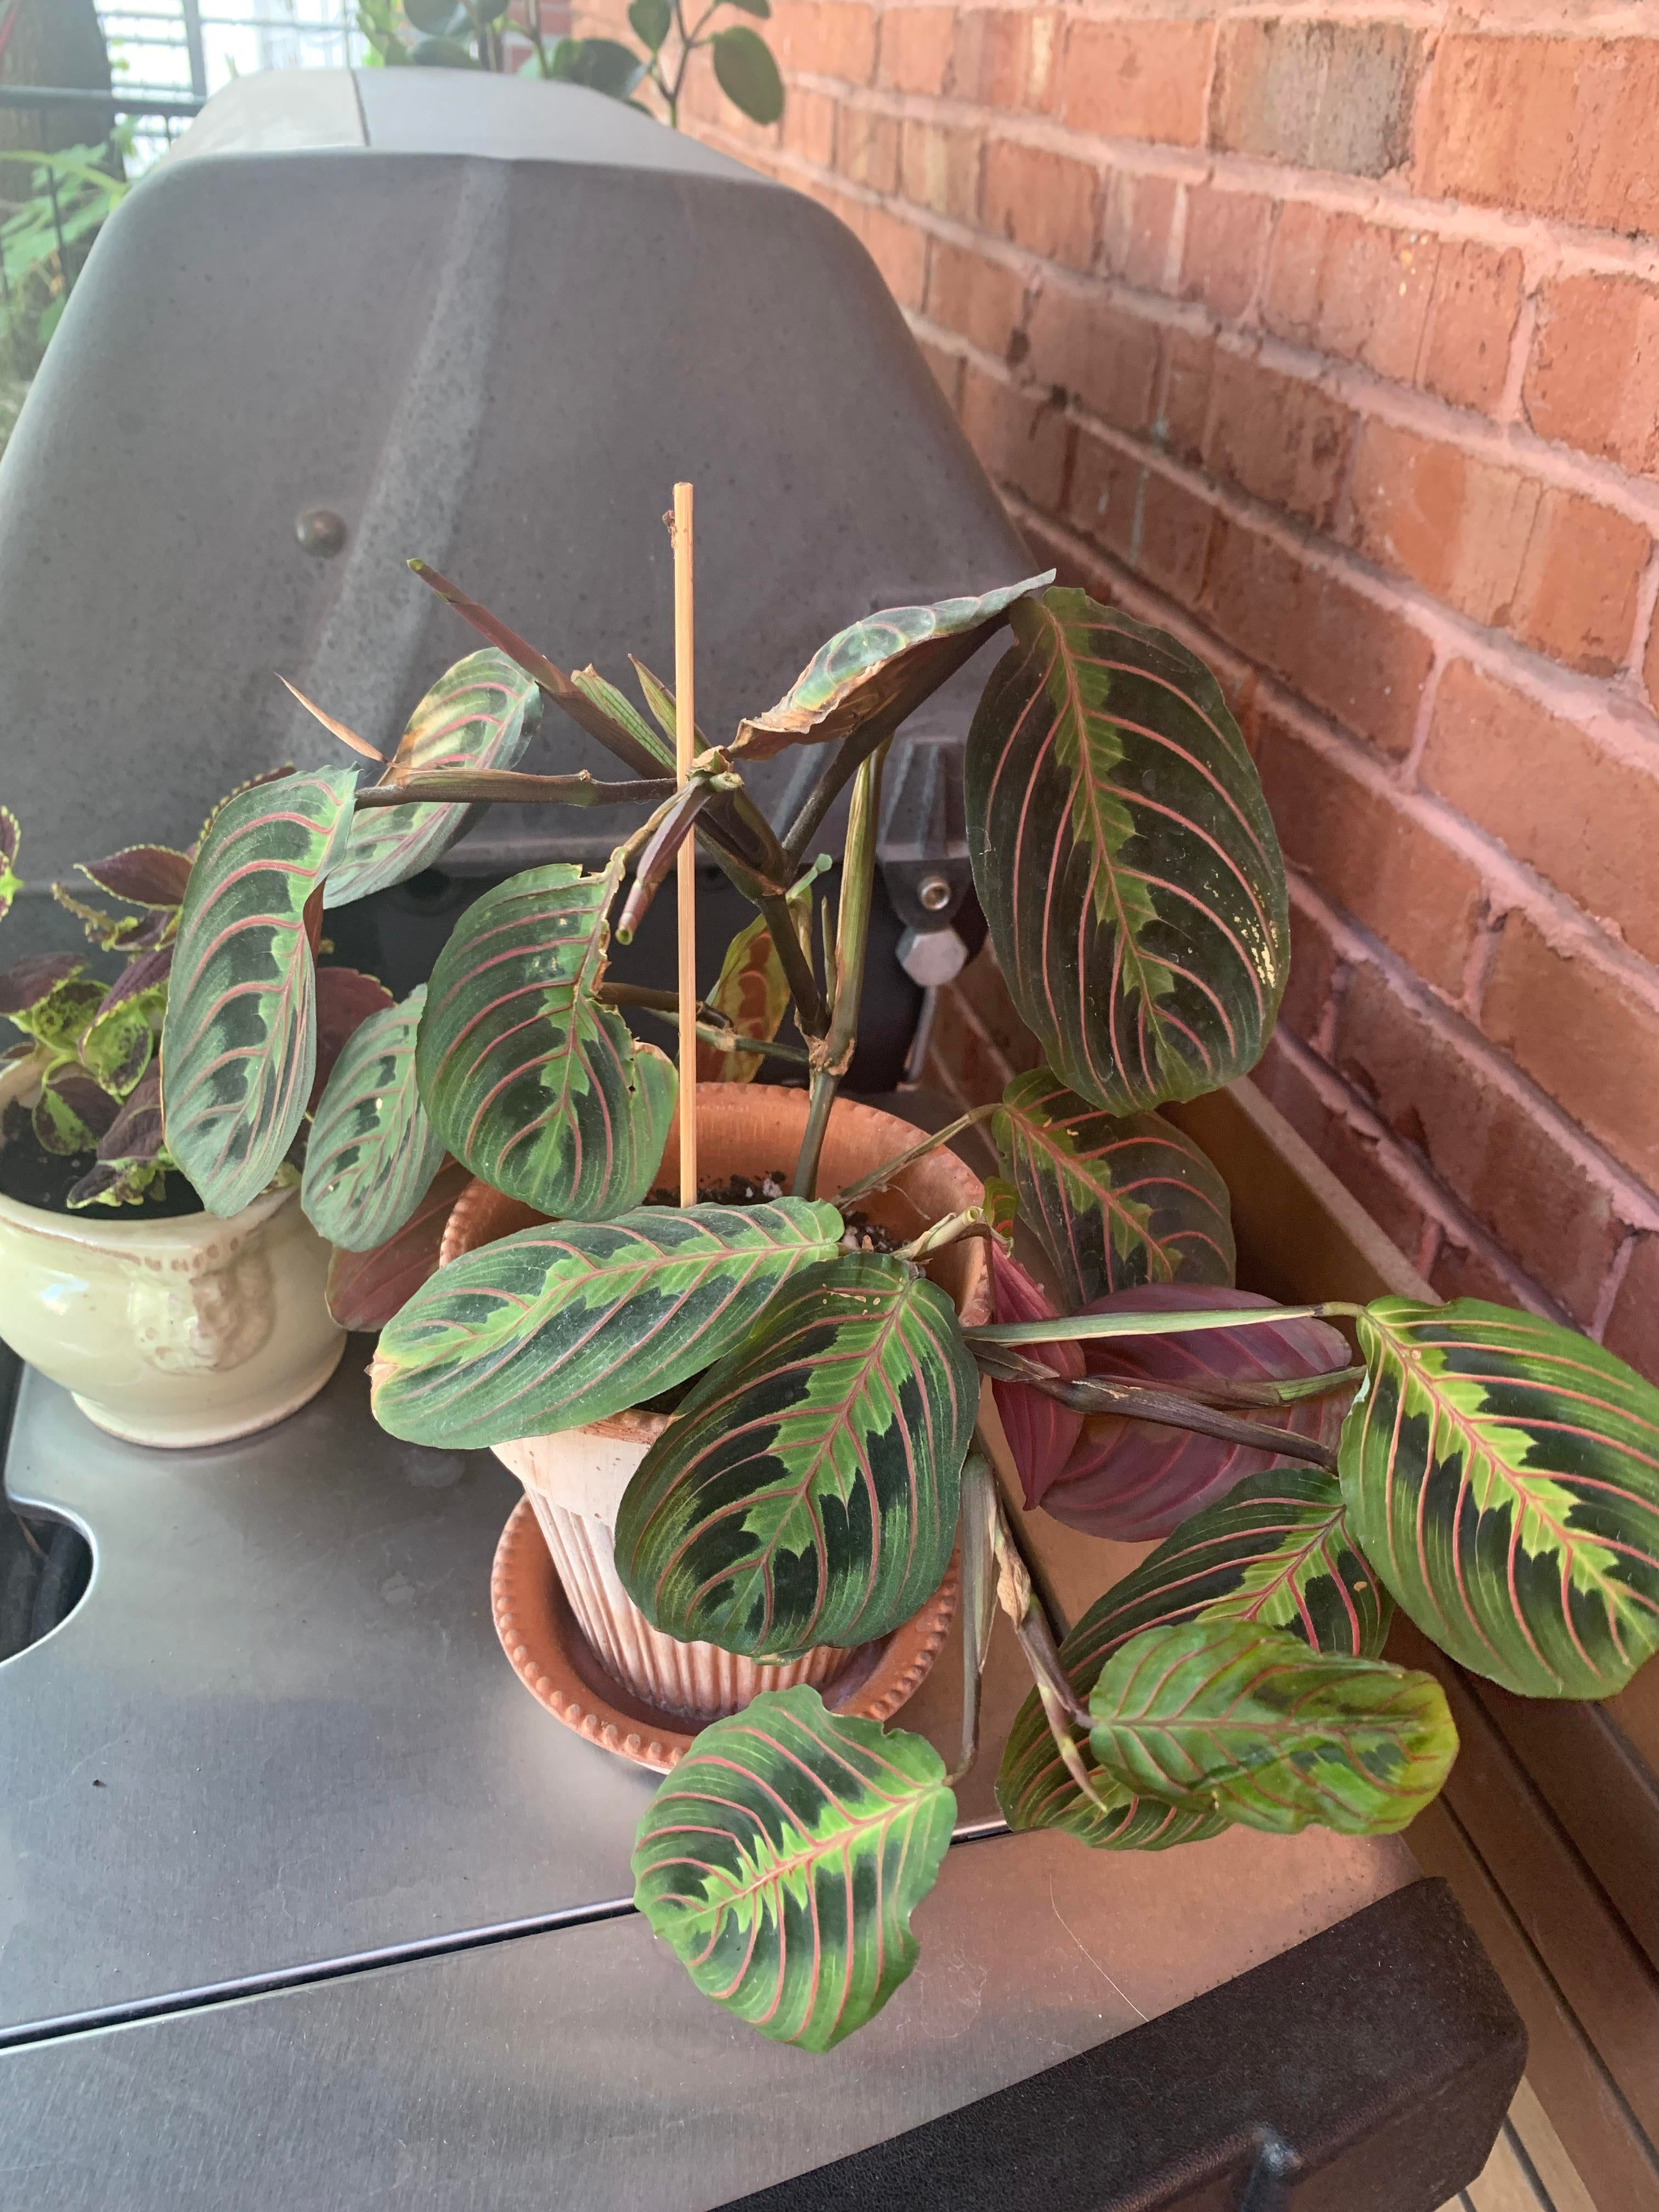 Anyone knows why my prayer plant looks so dry?? I was like that when I got it 2 months ago. I mist it everyday and the soil is always humid. It stays outside for now because the humidity is over 70% everyday.